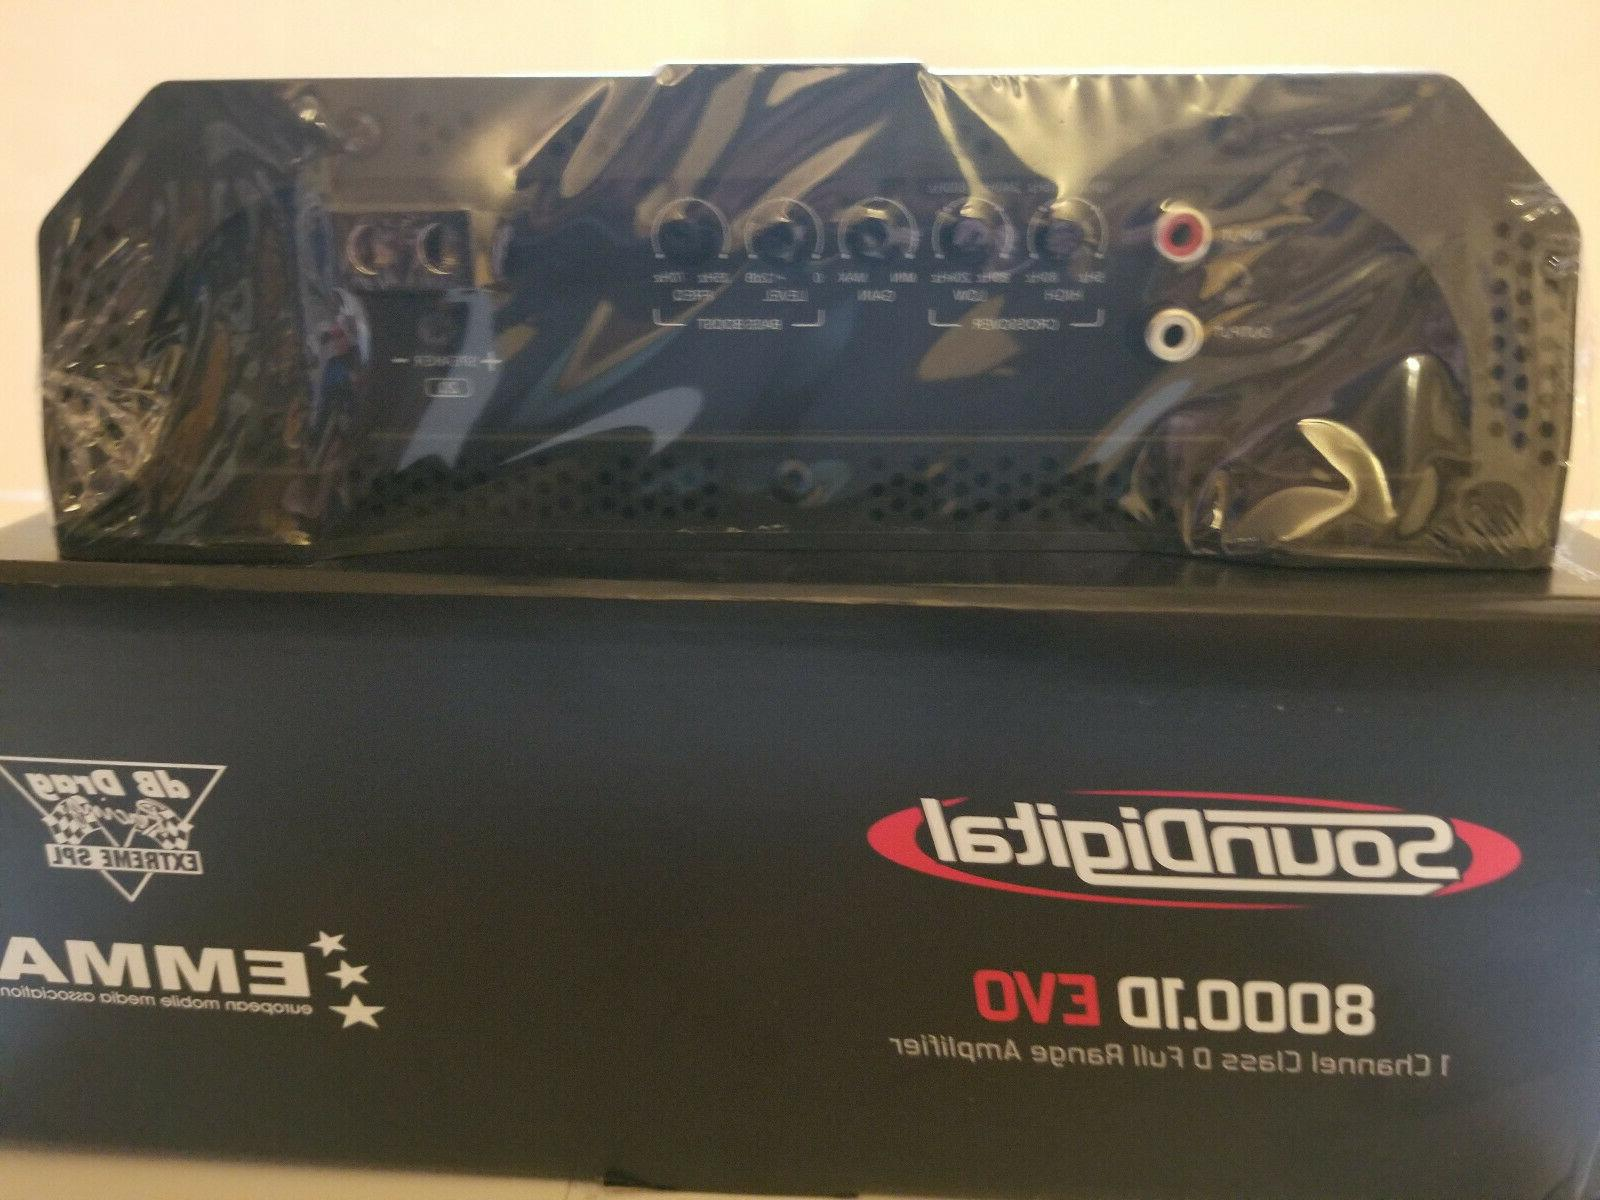 SOUNDIGITAL EVO CLASS D 8000 WATT 1-OHM SHIPPING